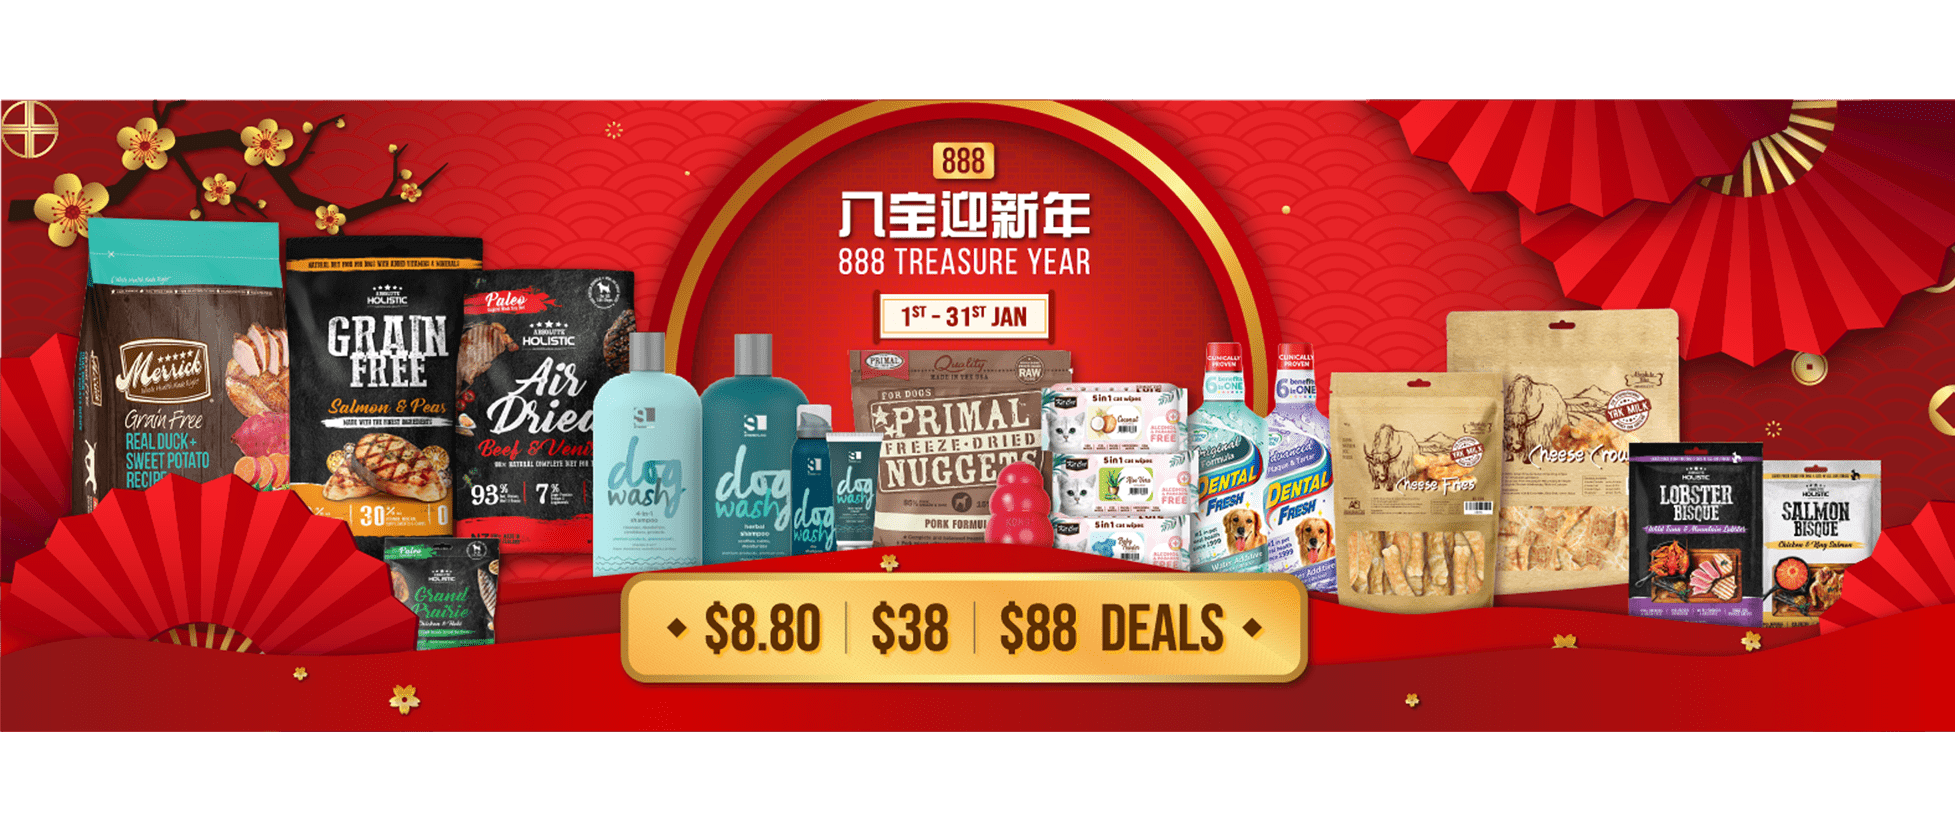 b2k chinese new year deals promo